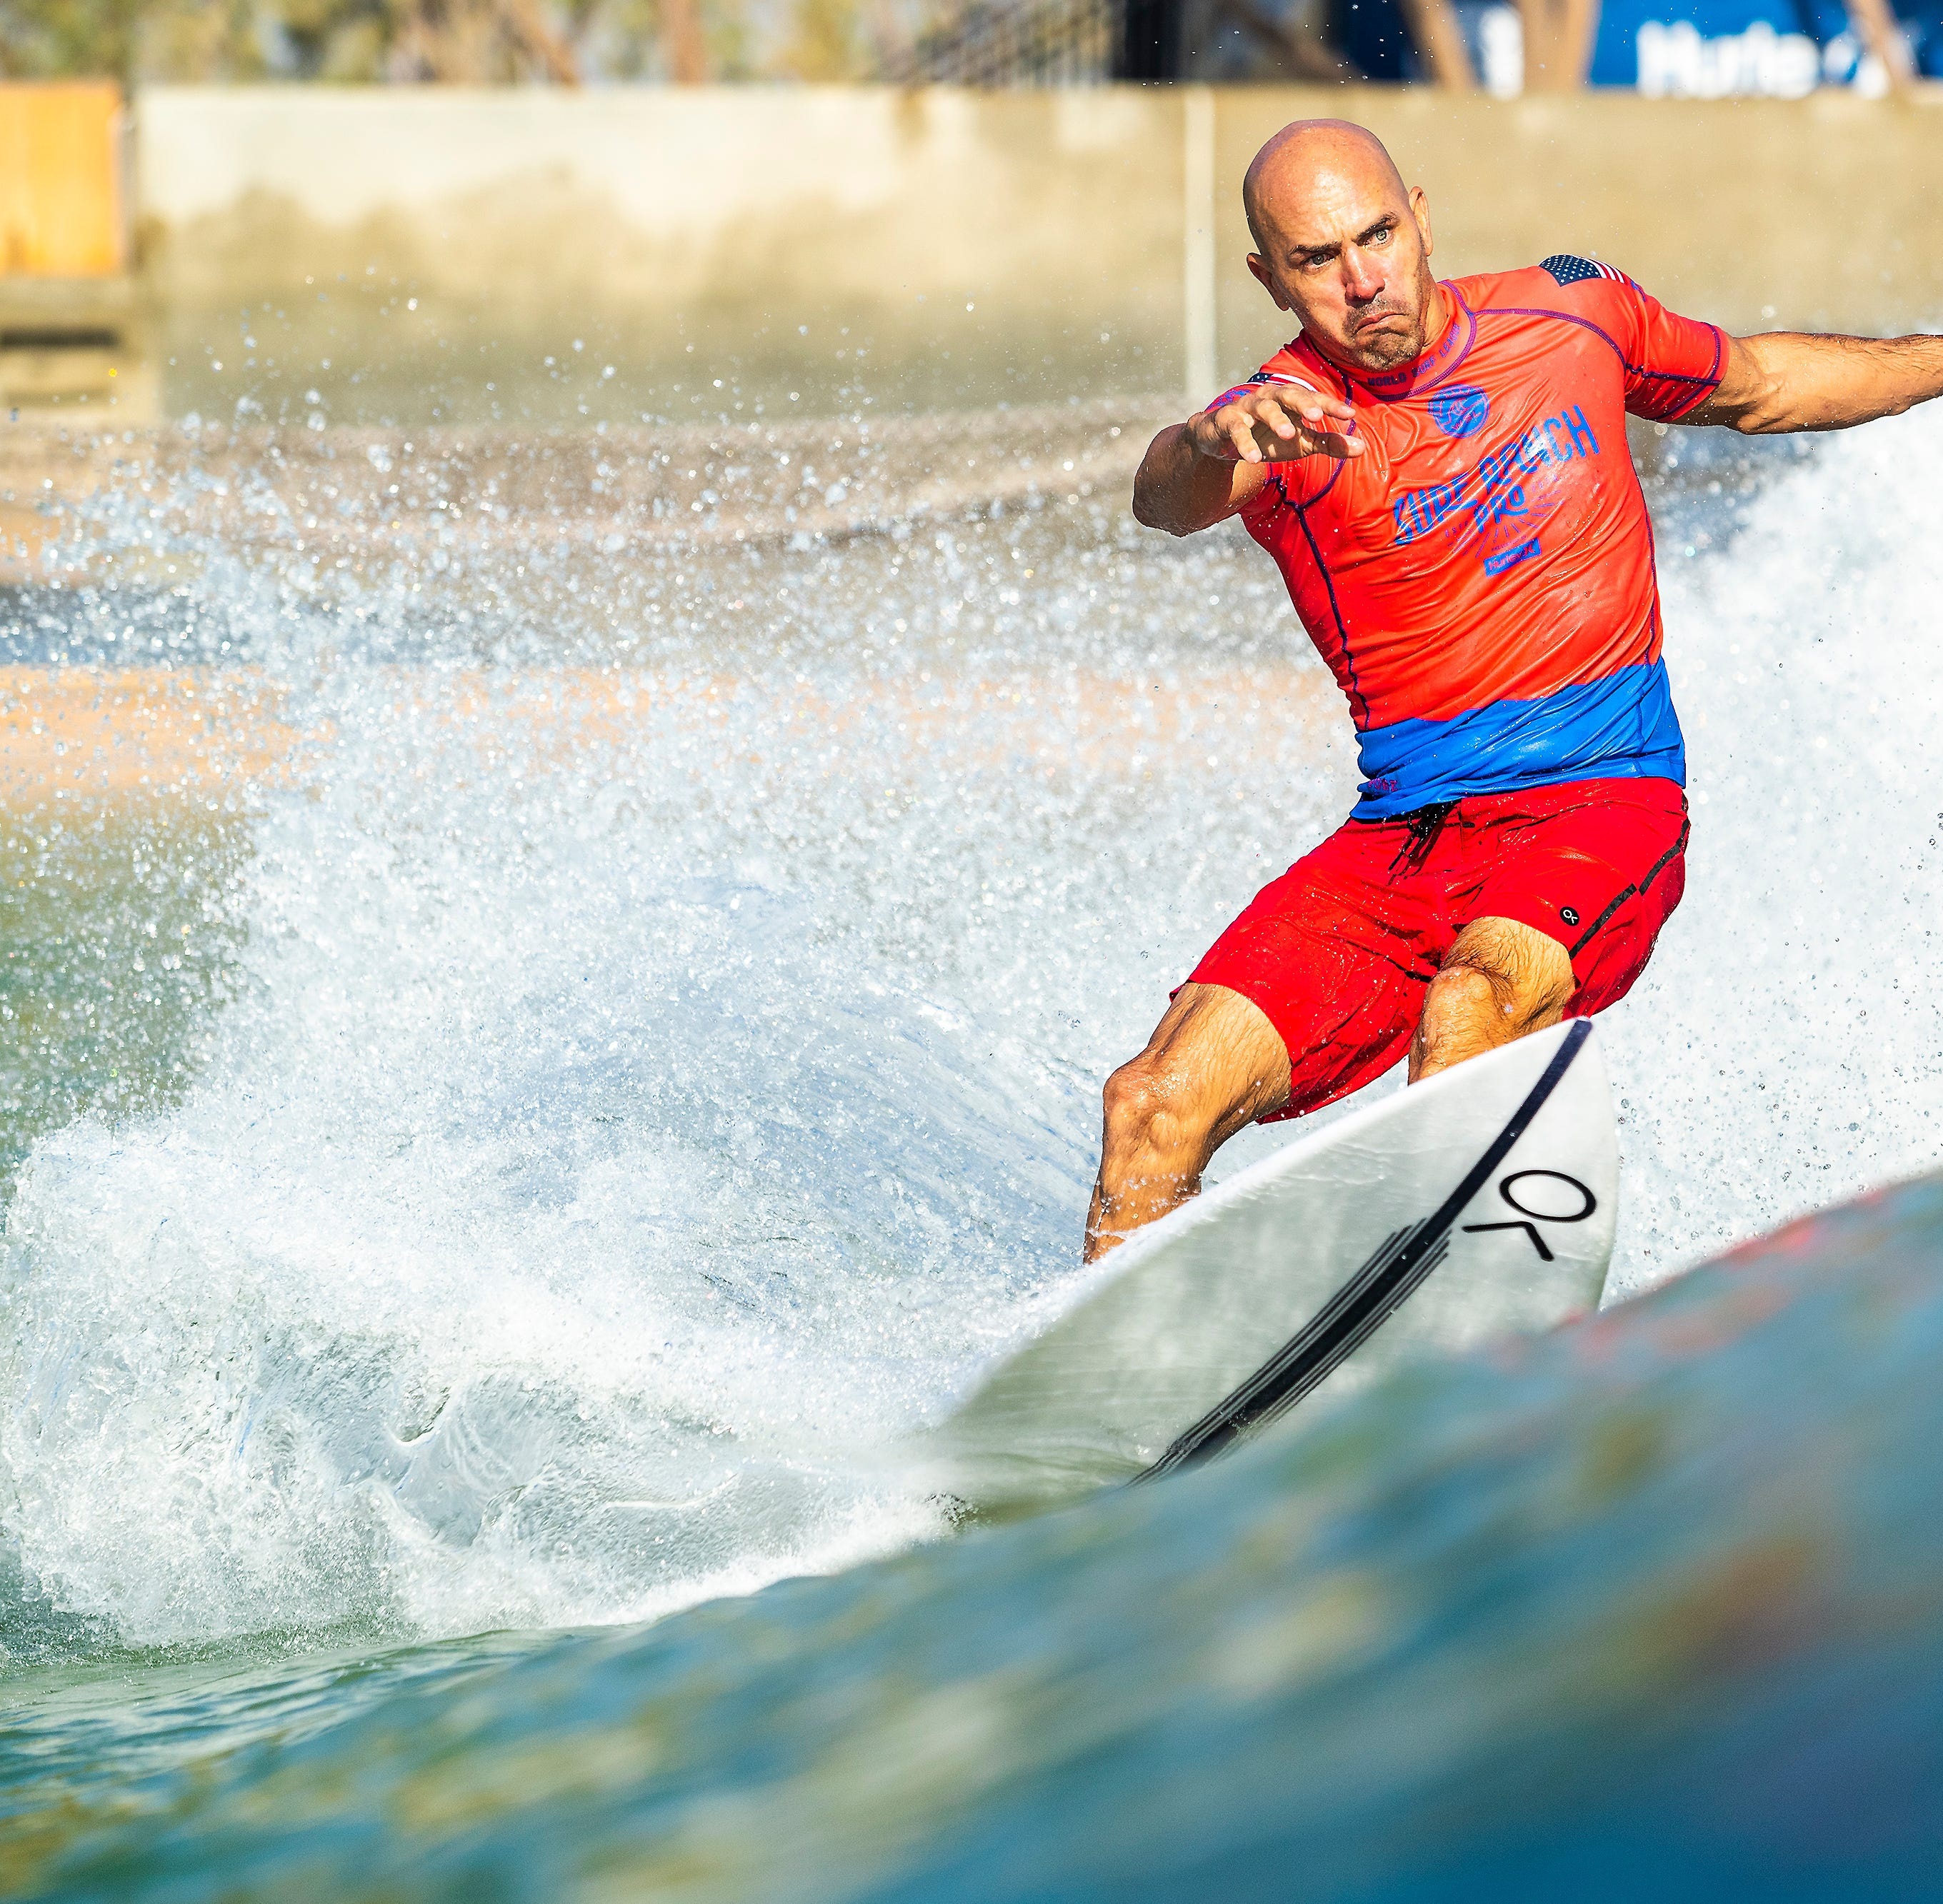 HBO documentary, new surf movie spotlight surf legends Kelly Slater, Hobgood twins